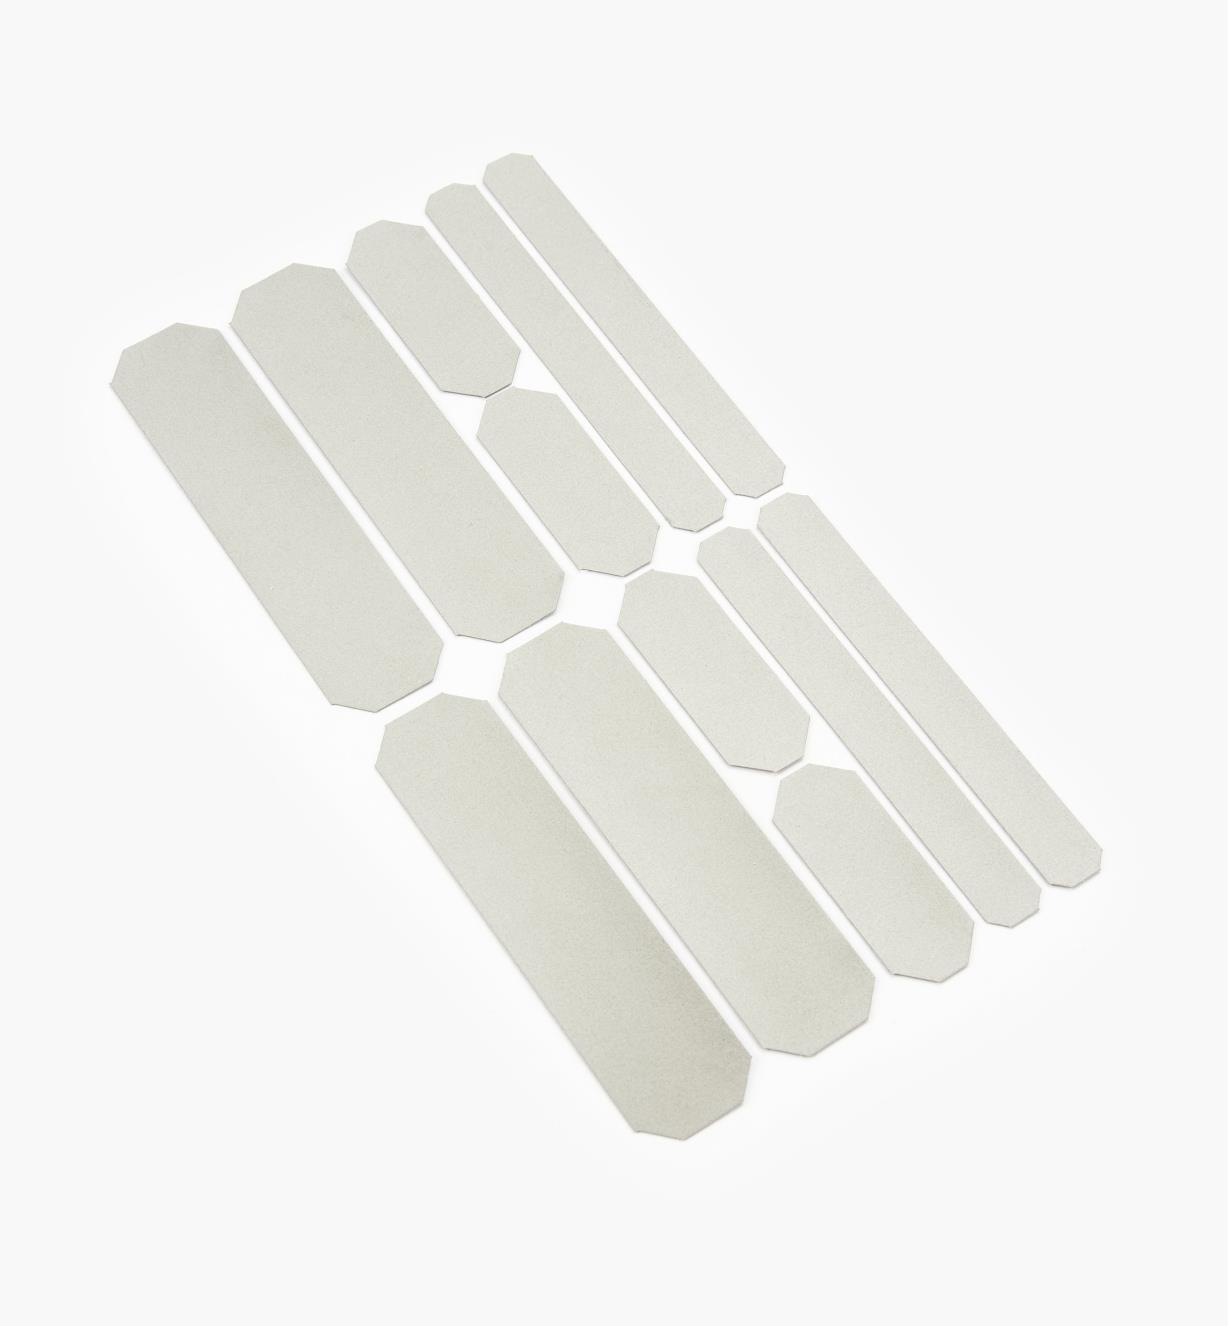 68K1002 - Iron-On Reflective Strips, pkg. of 12